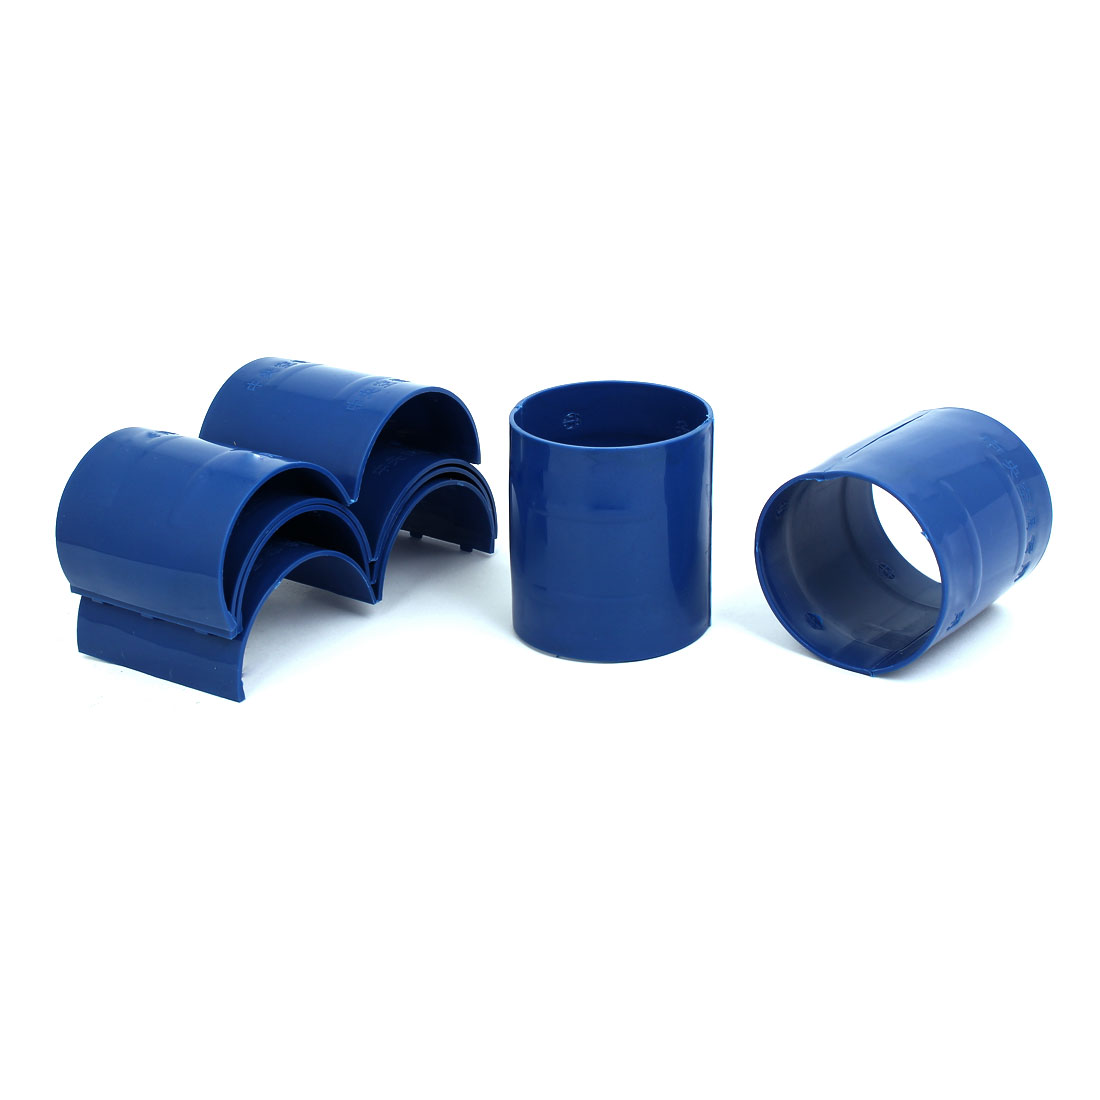 75mm Dia 2mm Thickness Central Air Conditioning Pipe Tube Clamp Blue 6pcs